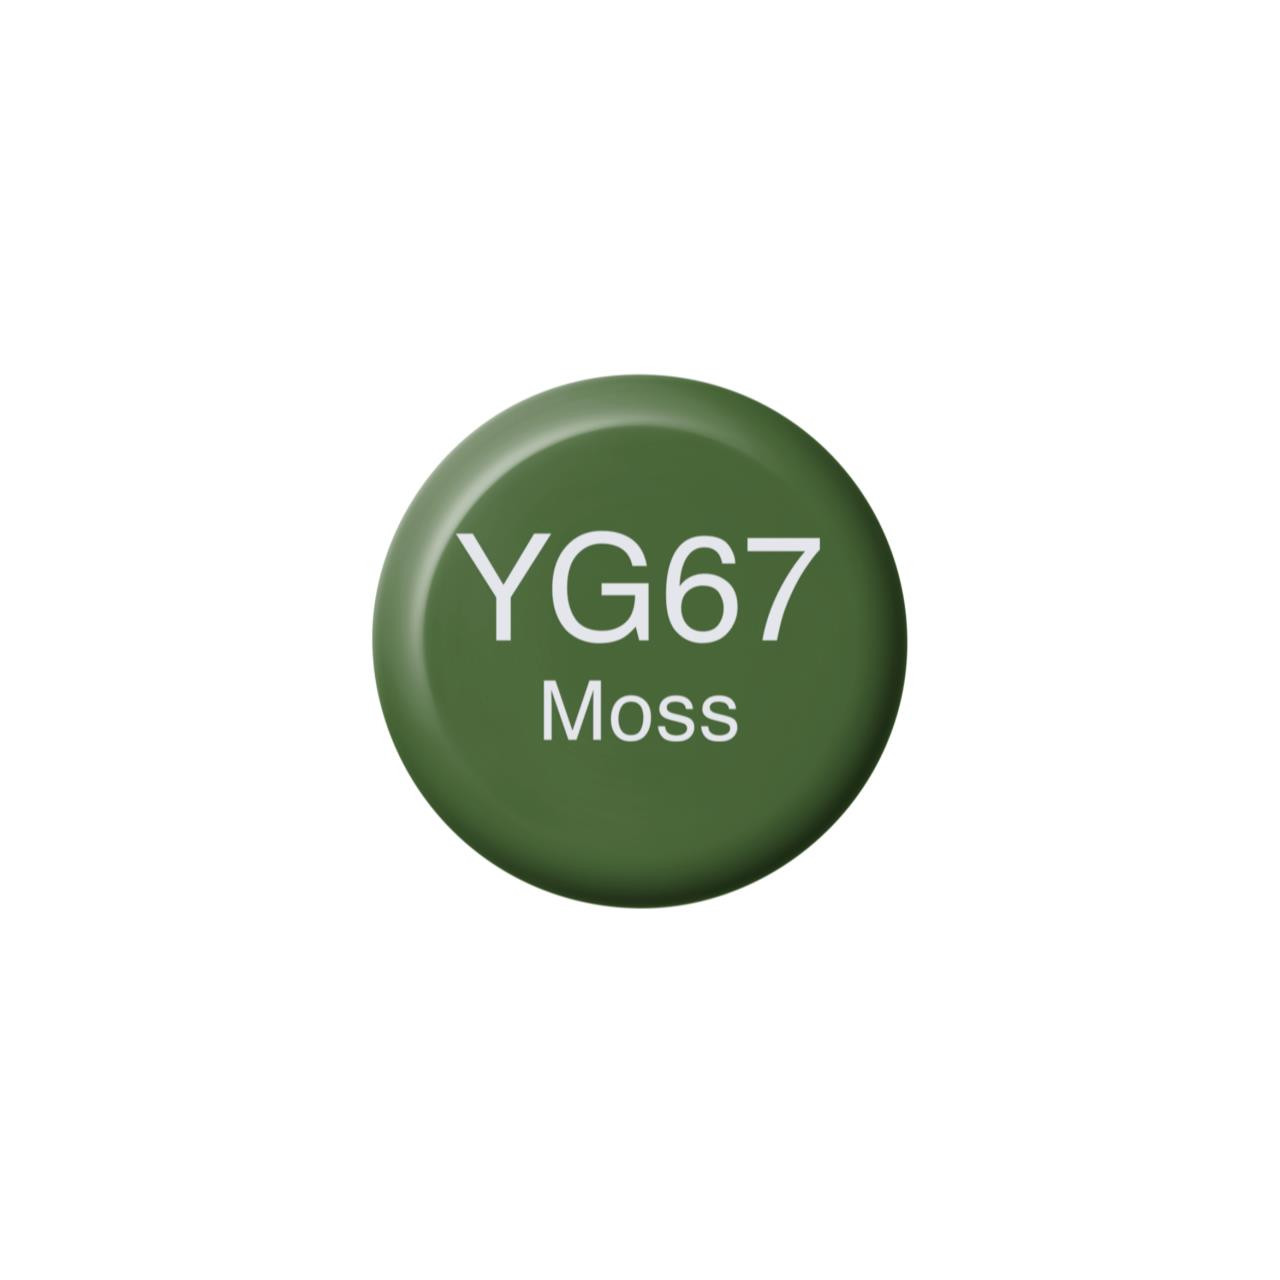 YG67 Moss, Copic Ink - 4511338058510